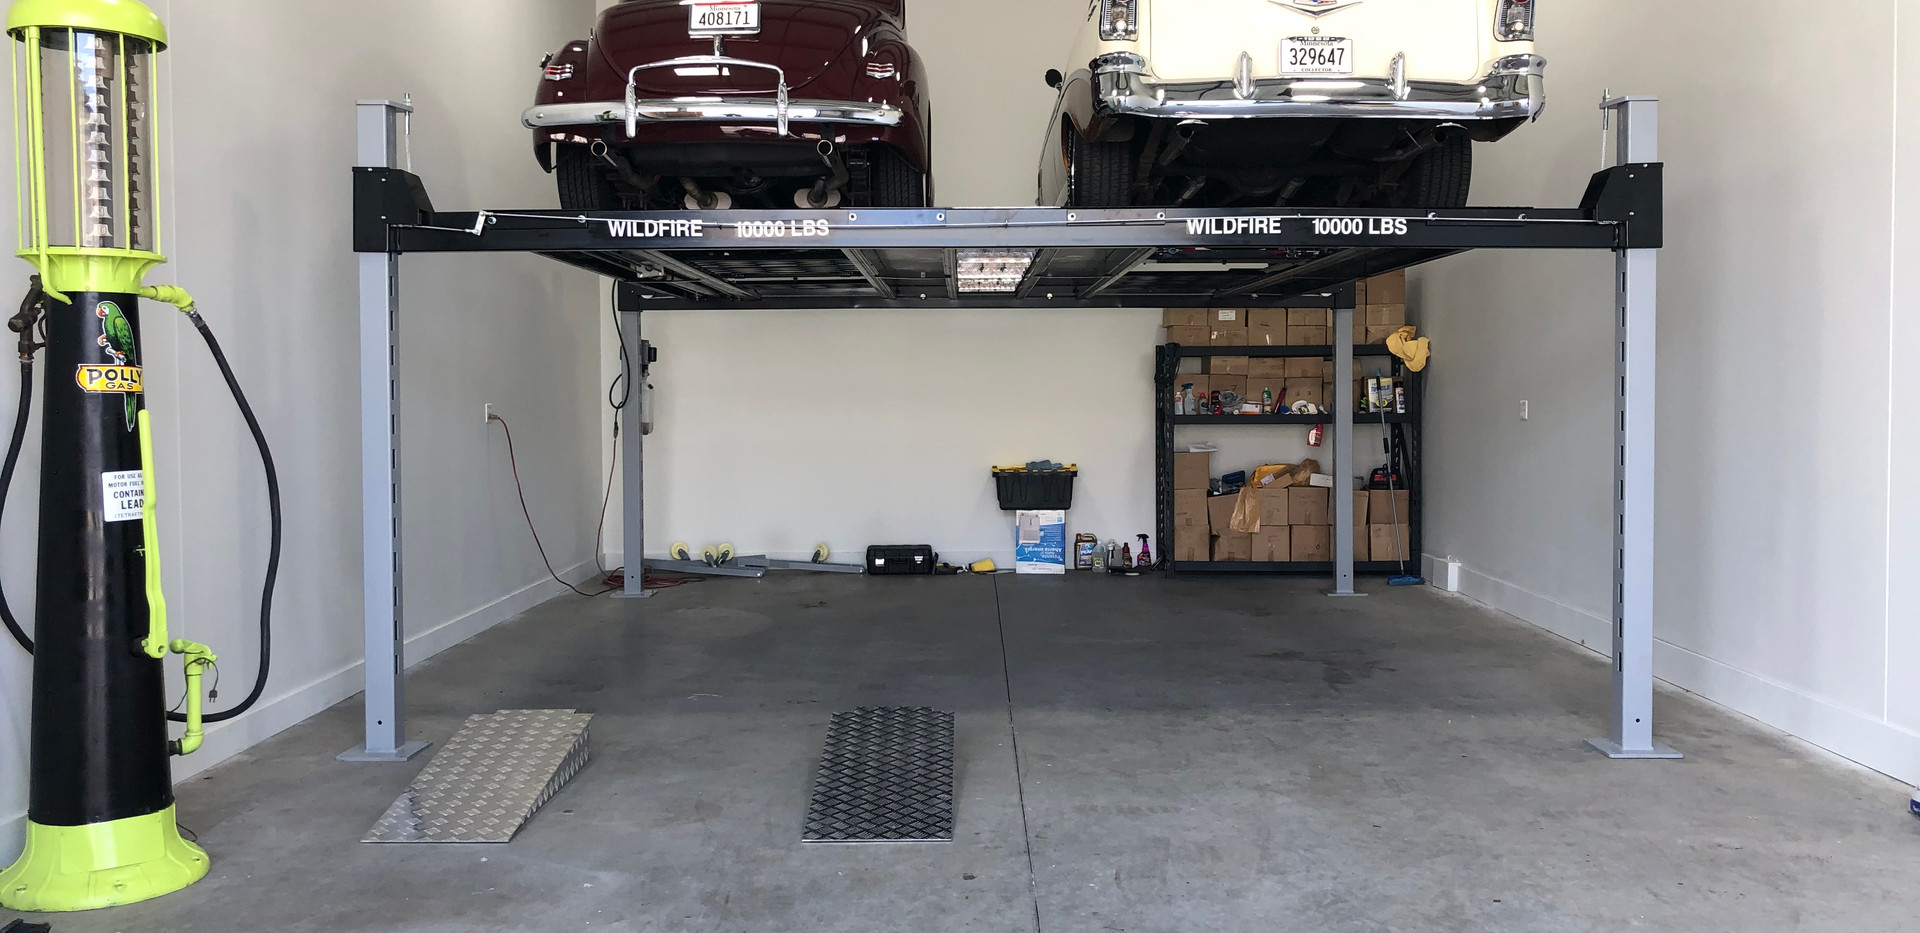 Double Wide Car Lift in Garage Condo.jpe